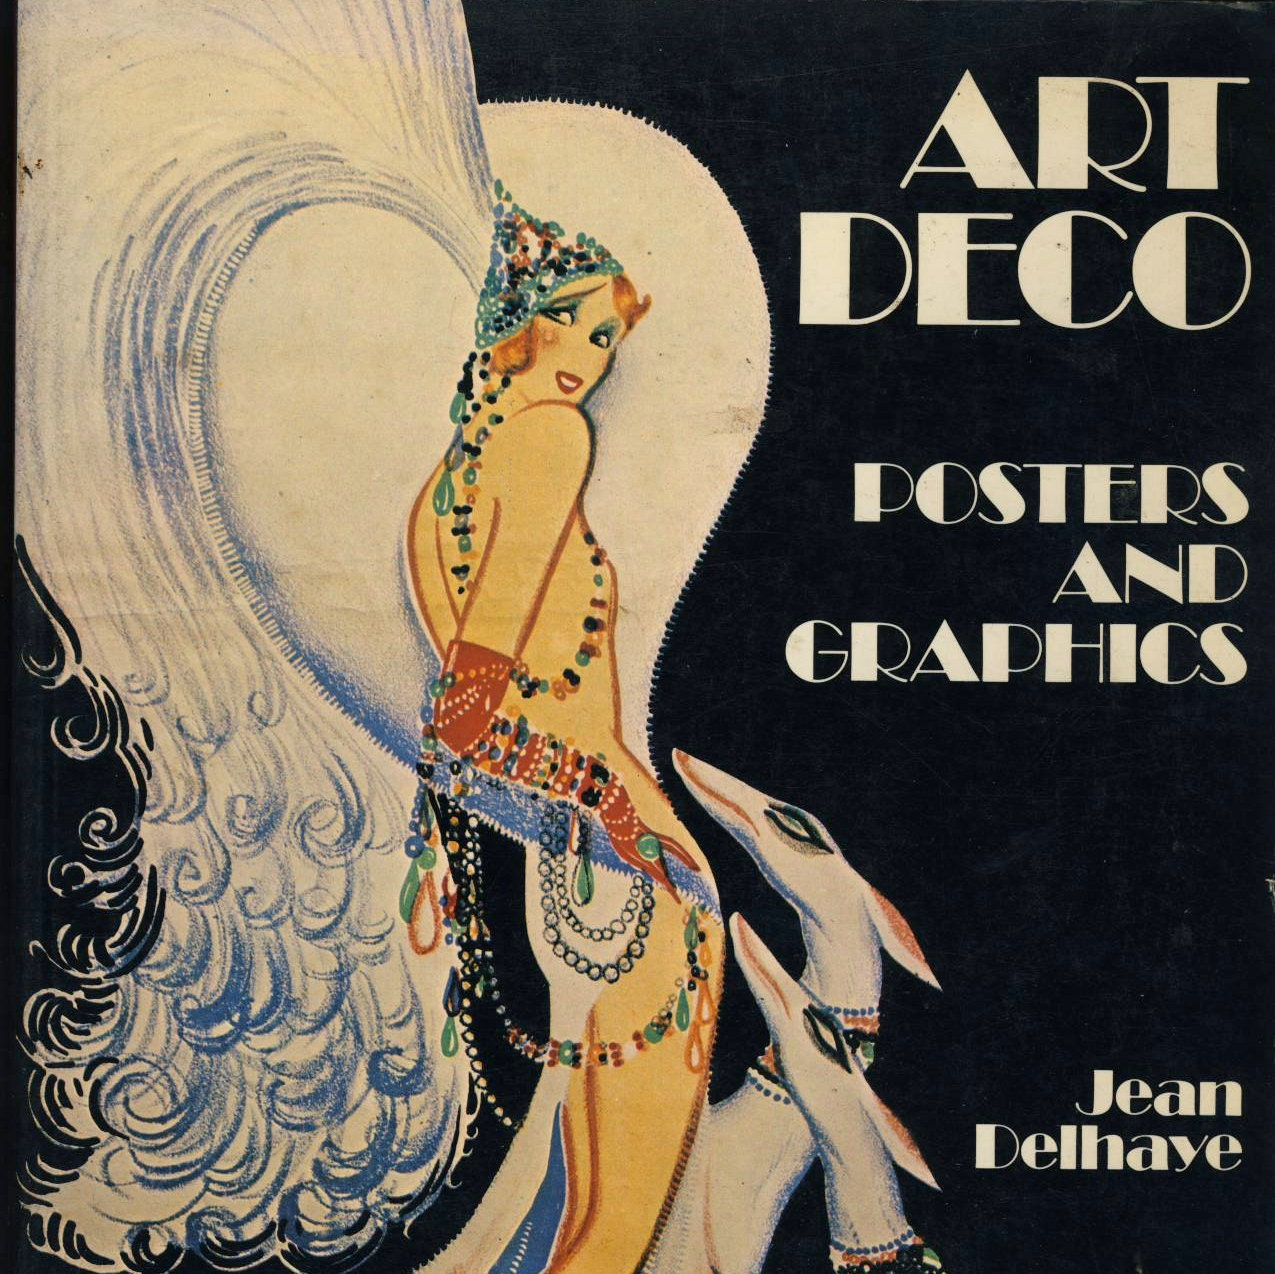 Art Deco Posters: Art Deco Posters And Graphics By Jean Delhaye By GoodOldBooks